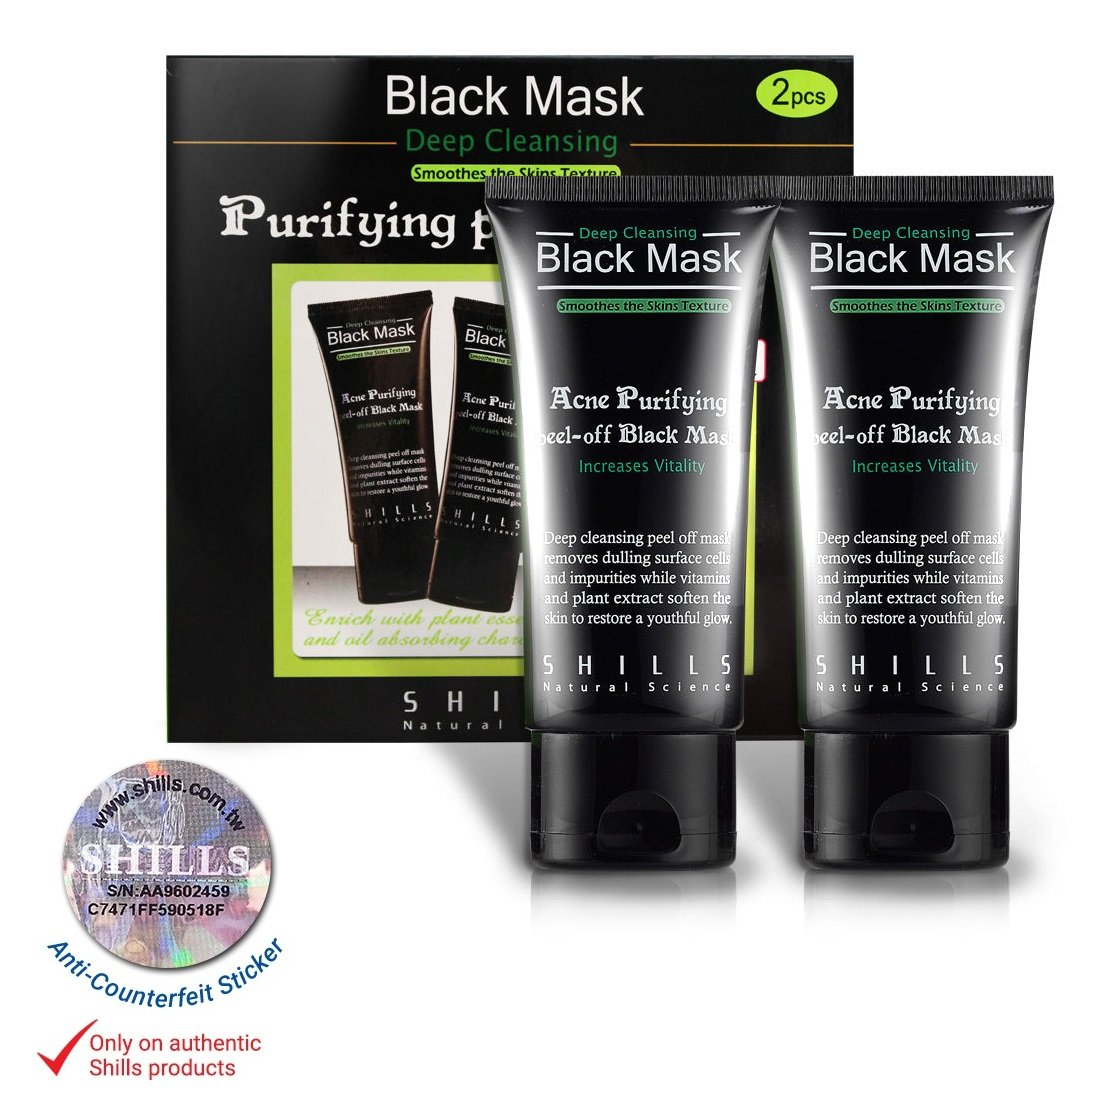 SHILLS Original Peel Off Black Mask With Activated Charcoal Deep Cleansing Purifying With New & Improved Formula For 2017, 100% Genuine, Natural, Oil-Control, Blackhead Removing (50ml) (Single Pack) SHIBLMT